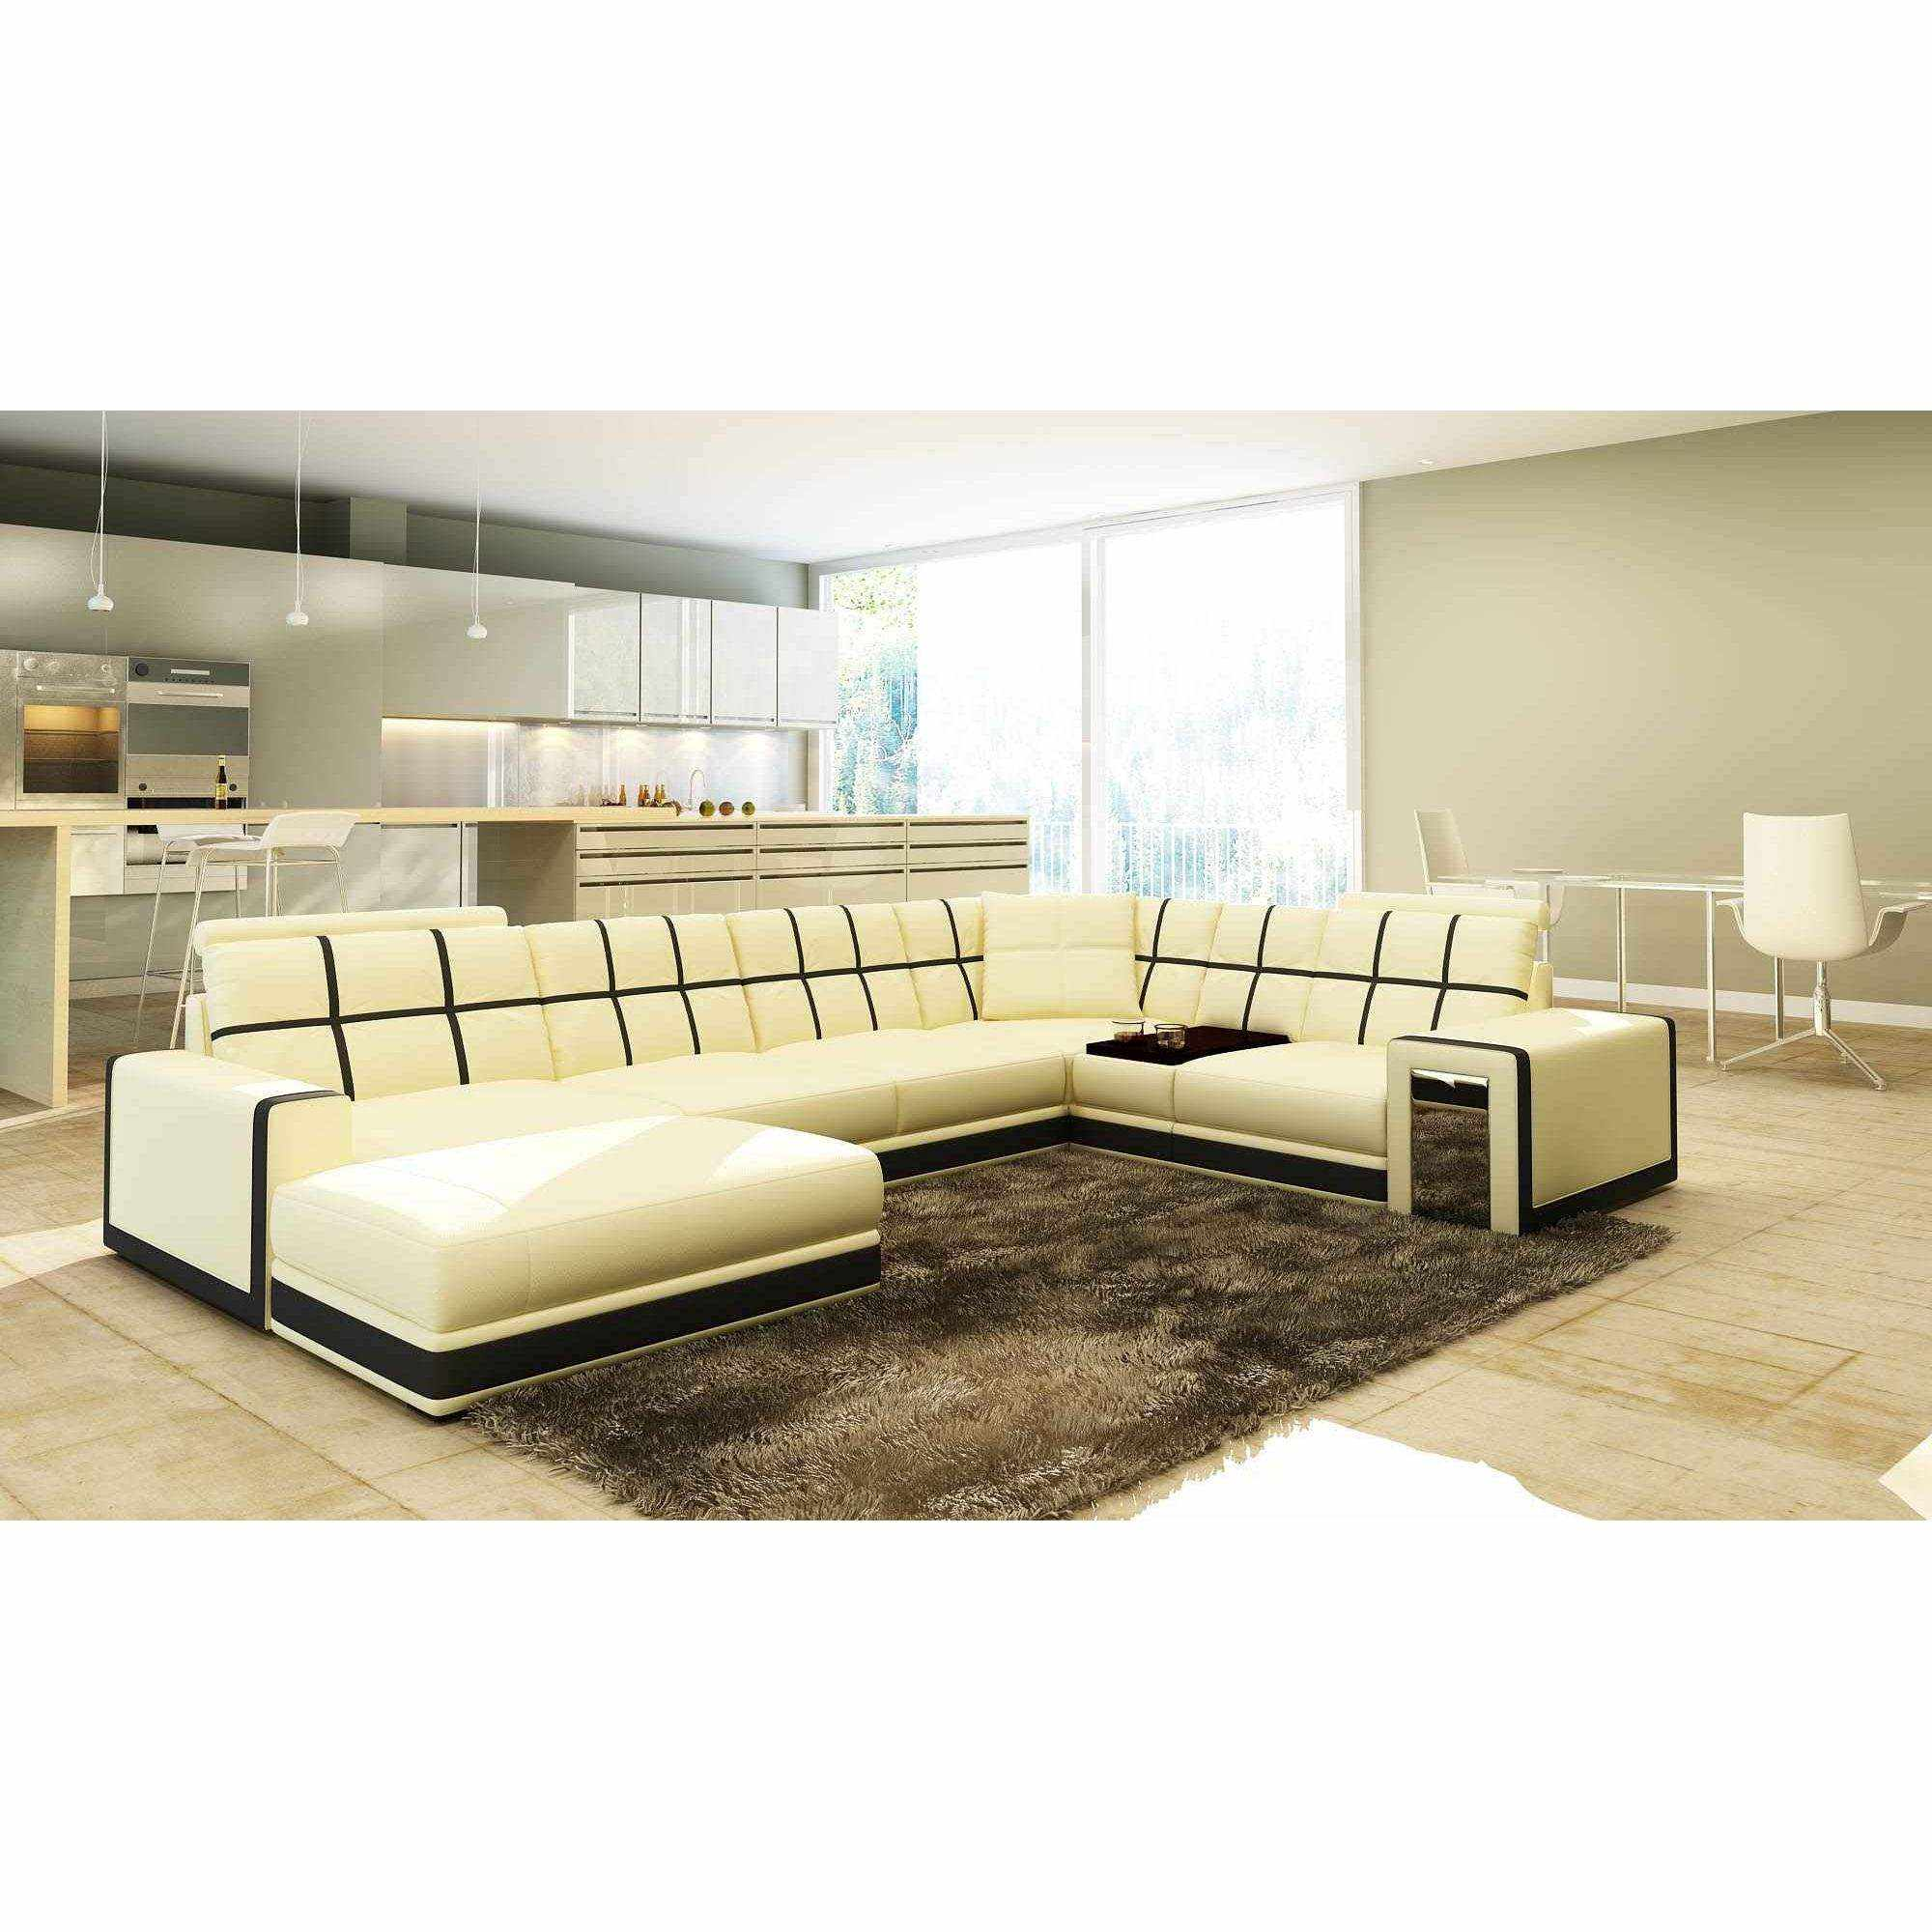 Deco in paris canape d angle panoramique cuir beige et noir design electra - Canape panoramique design ...